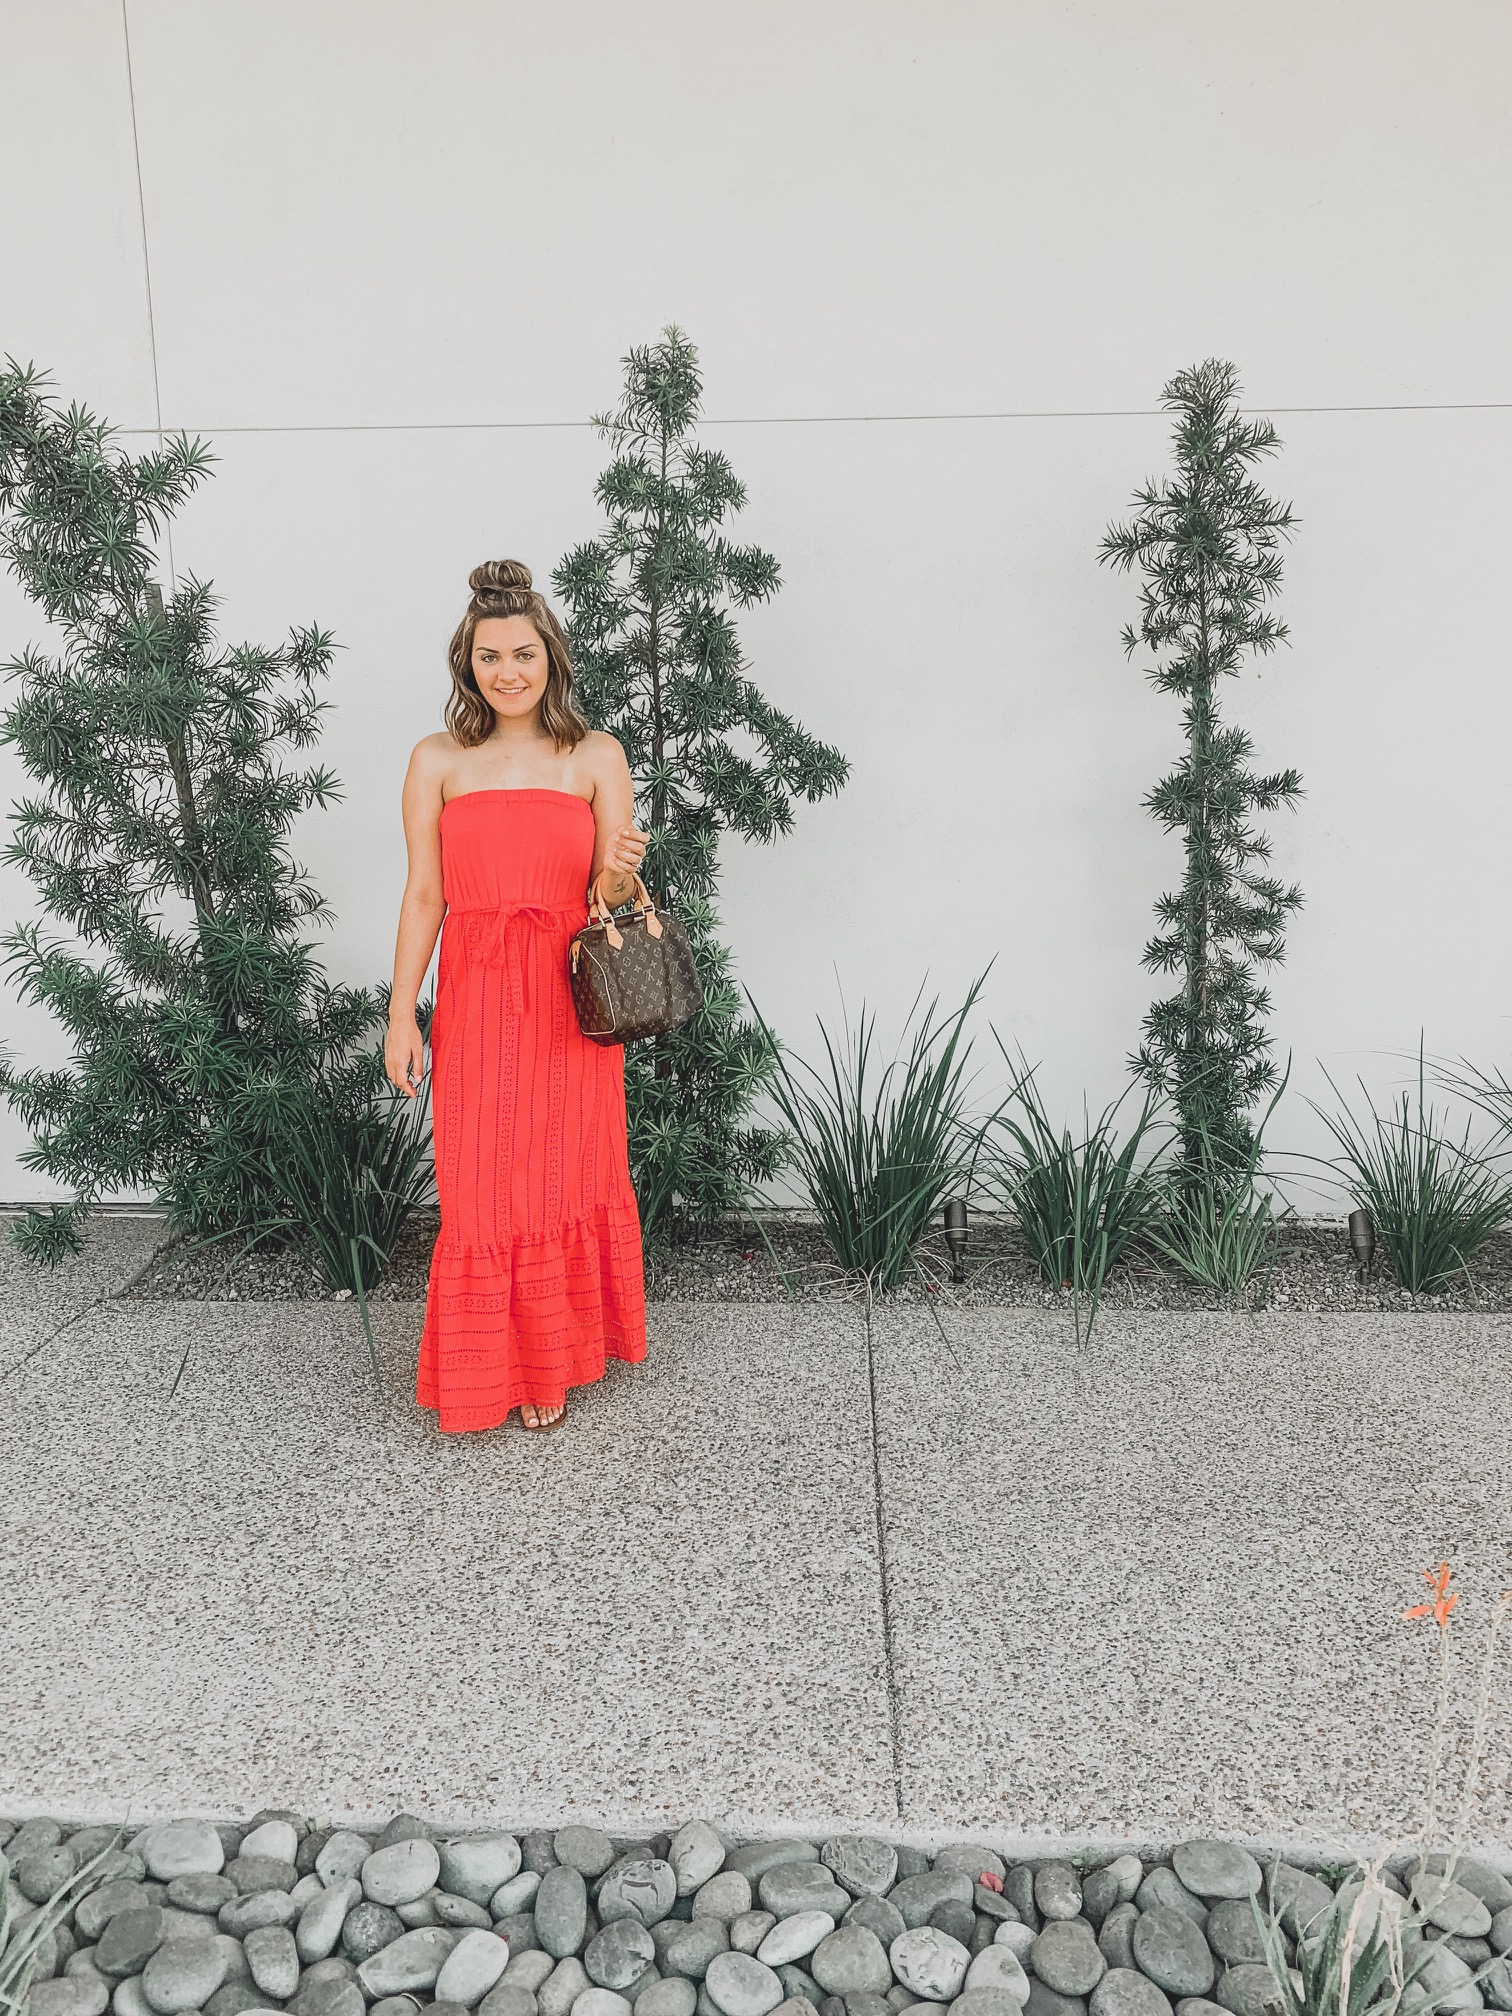 Top 10 Daily Affirmations & The Cutest Red Dress For Summer